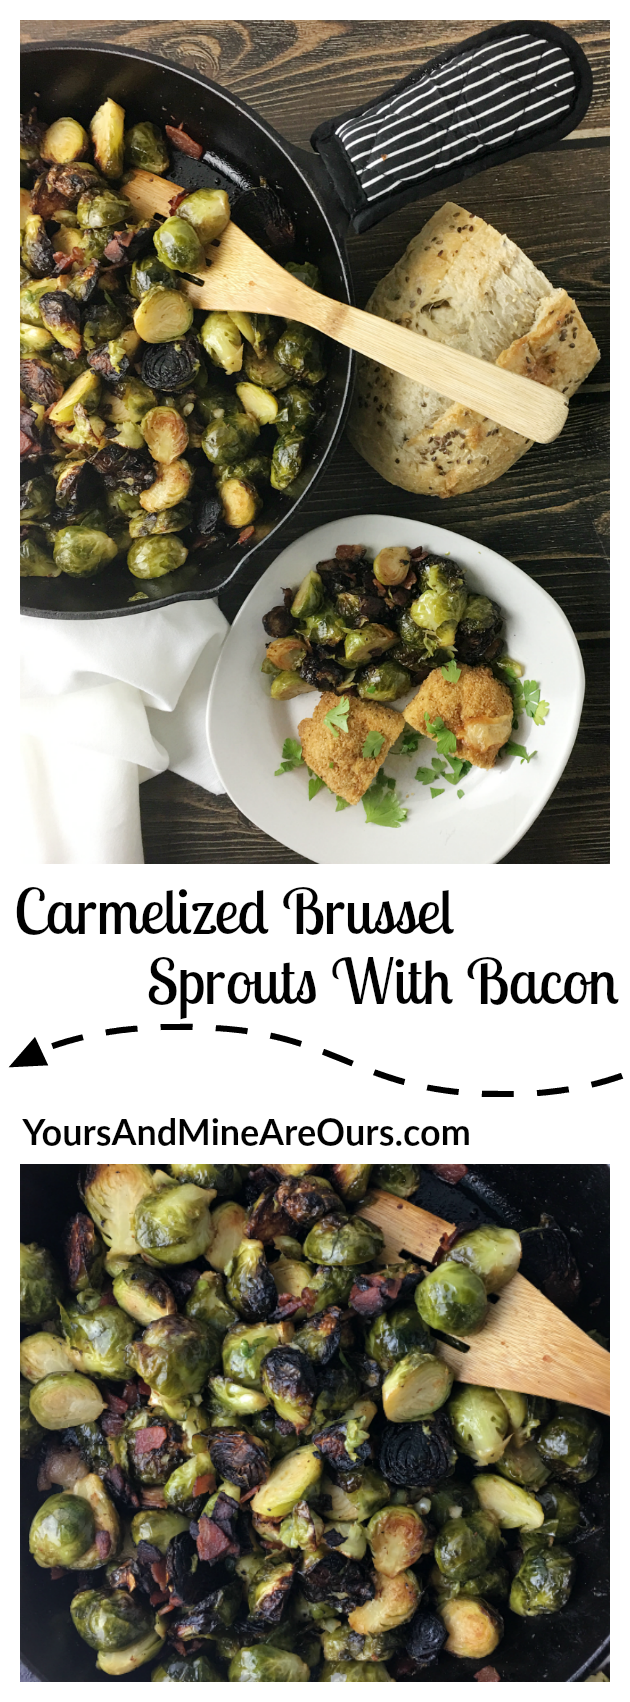 caramelized_brussels_sprouts_with_bacon_Pinterest | YoursAndMineAreOurs